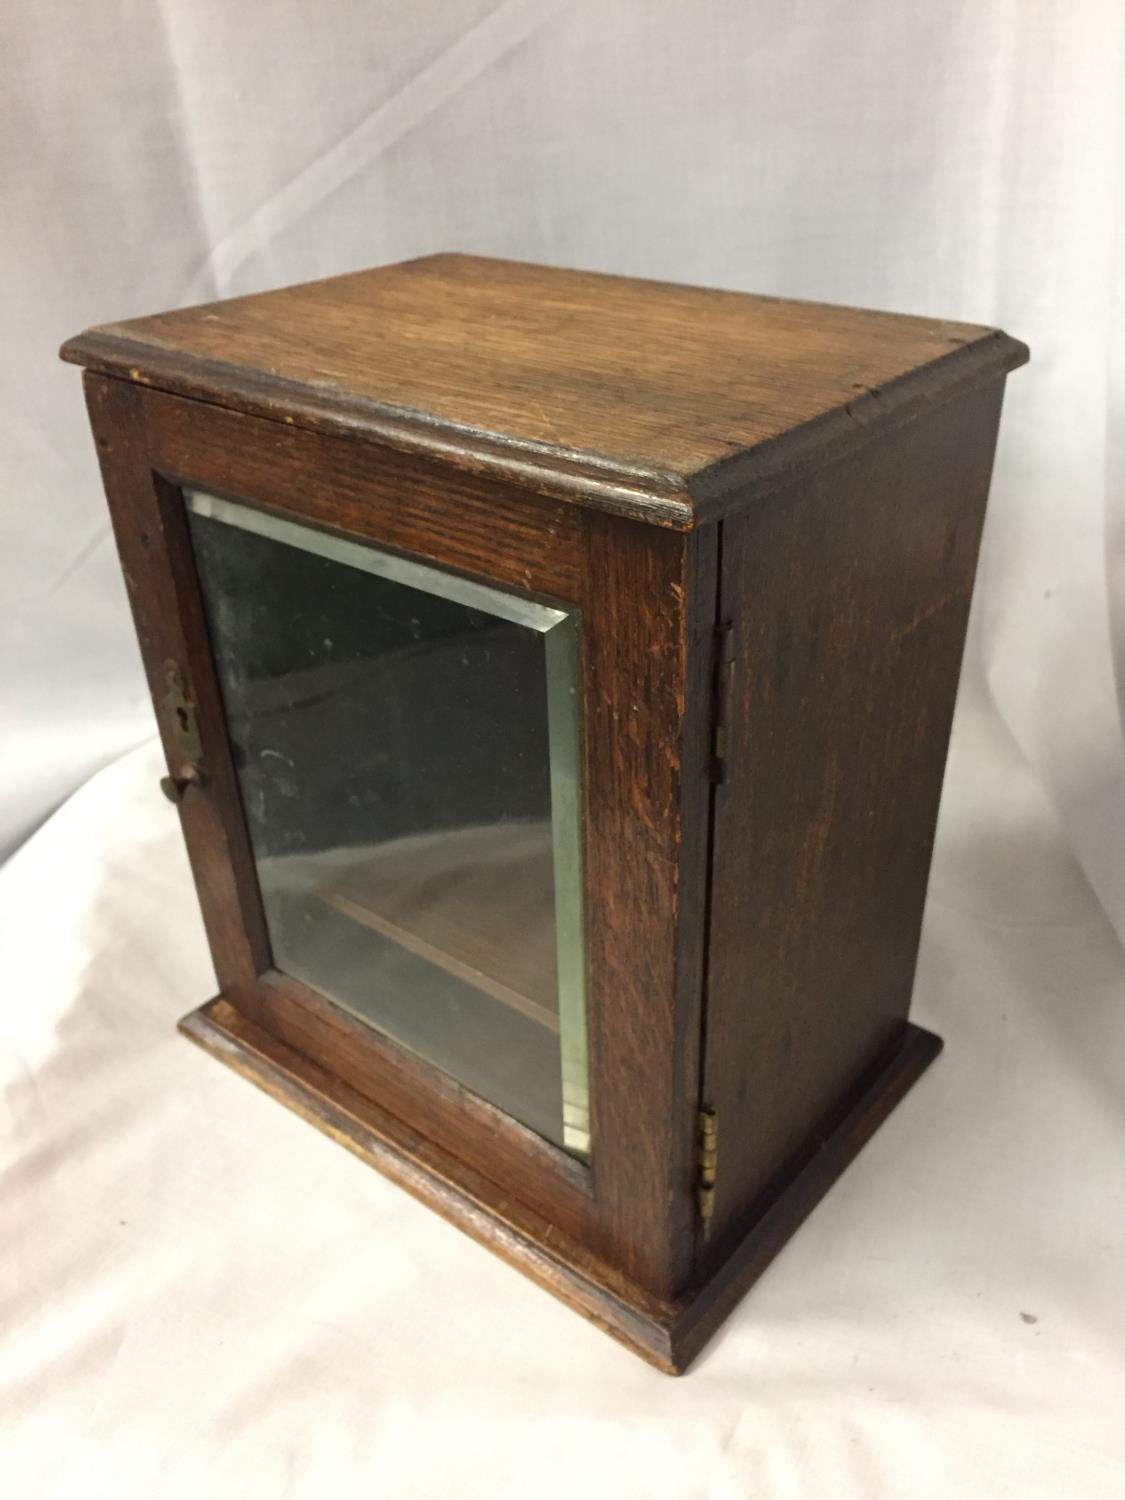 AN MINATURE OAK GLASS FRONTED CABINET HEIGHT 25CM - Image 3 of 3